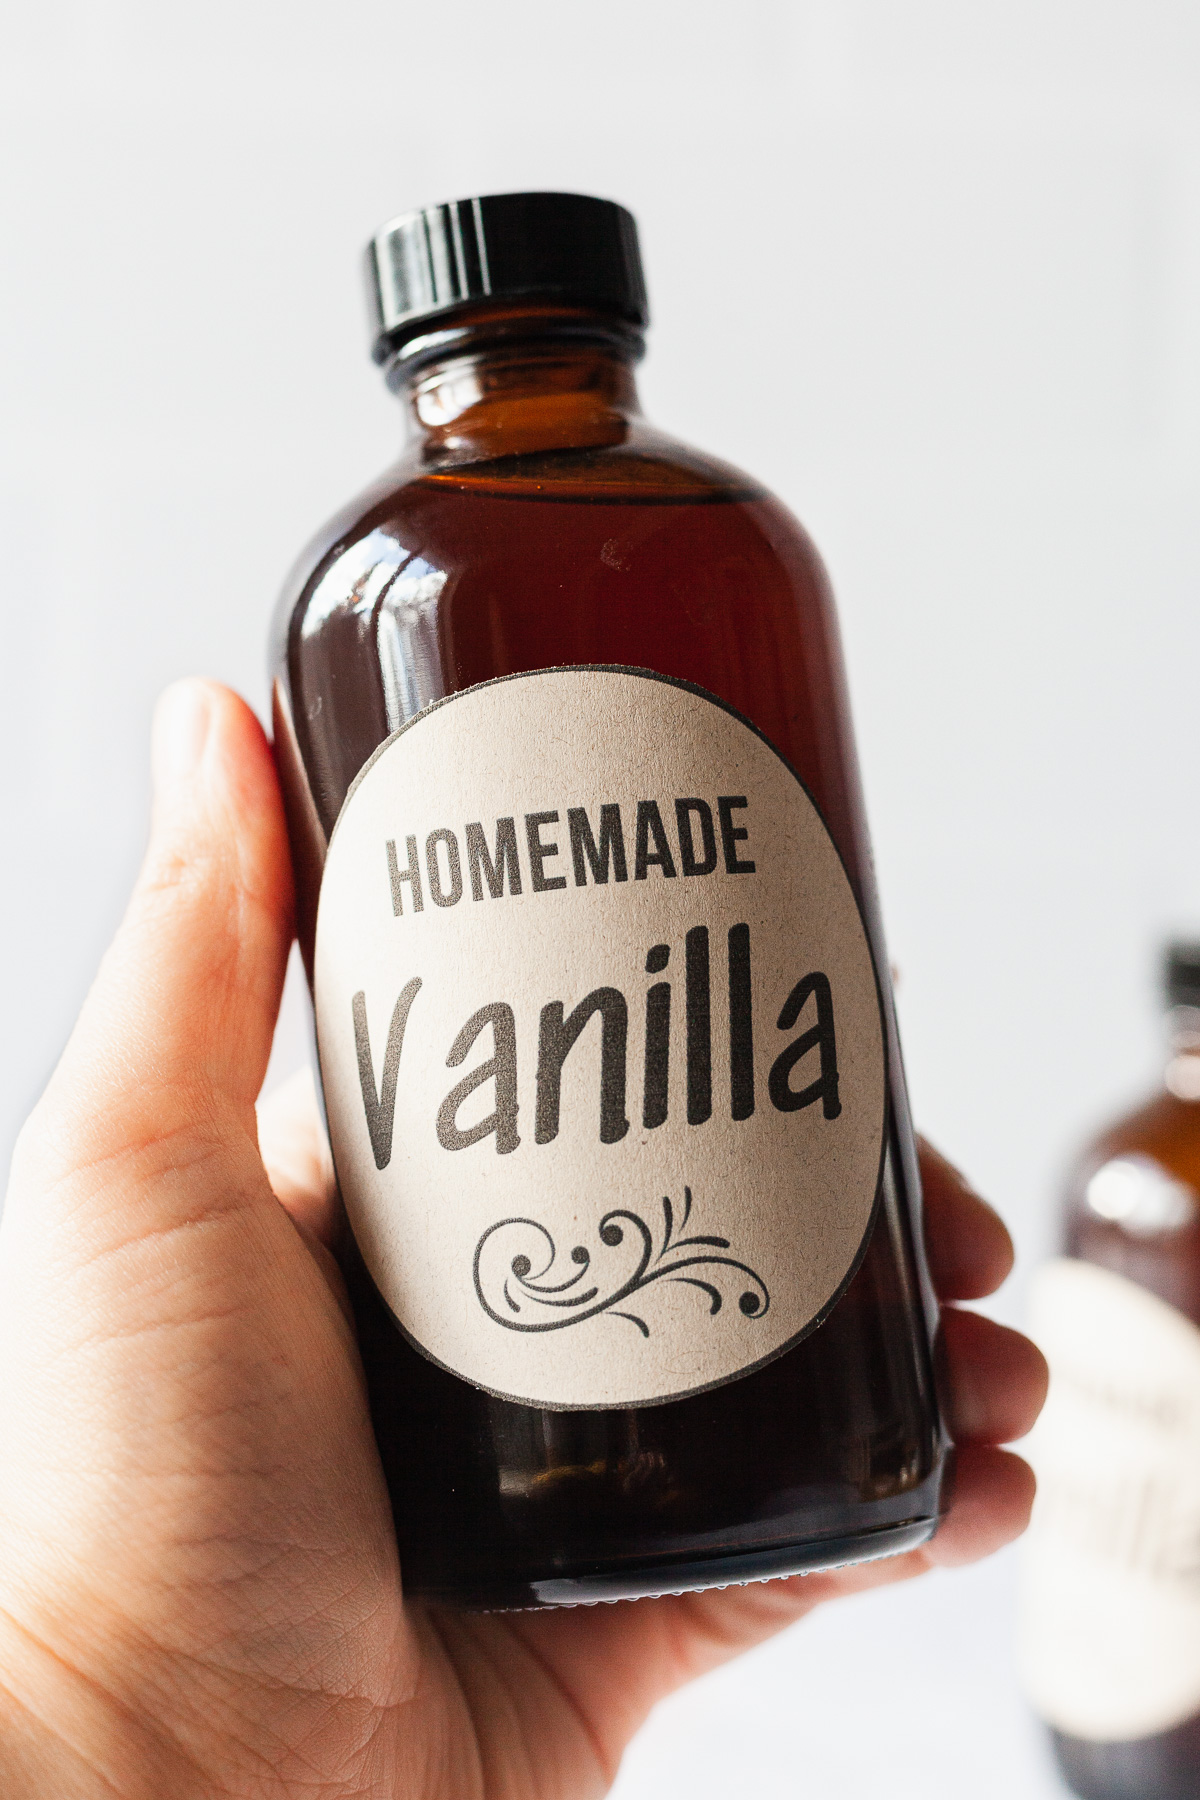 image of homemade vanilla in amber glass bottle with hand holding it